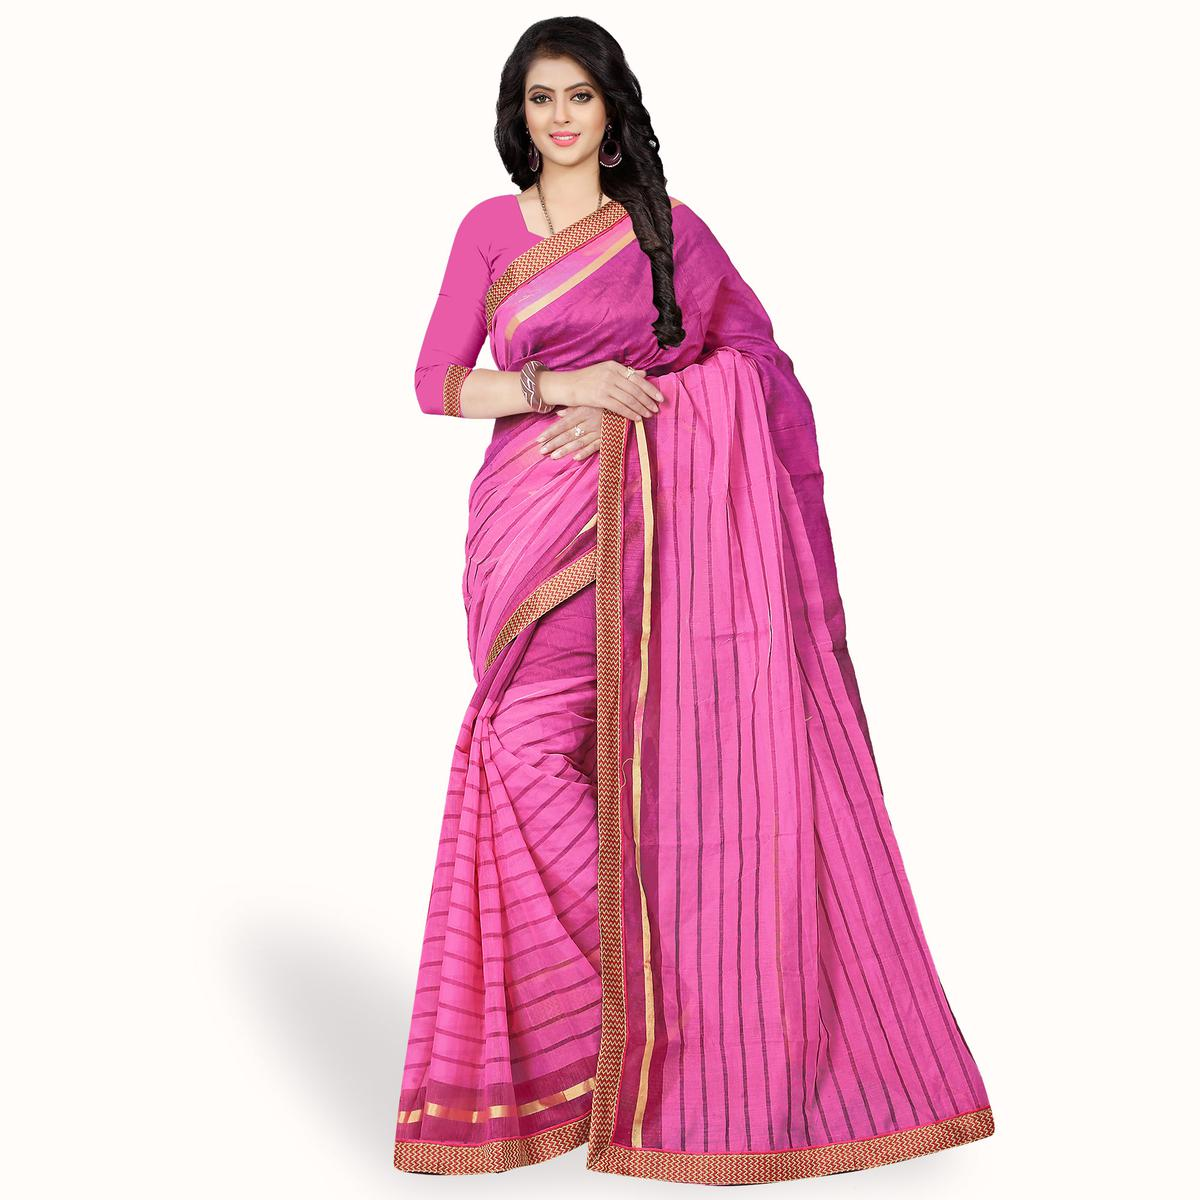 Mesmeric Pink Colored Casual Wear Printed Chanderi Silk Saree